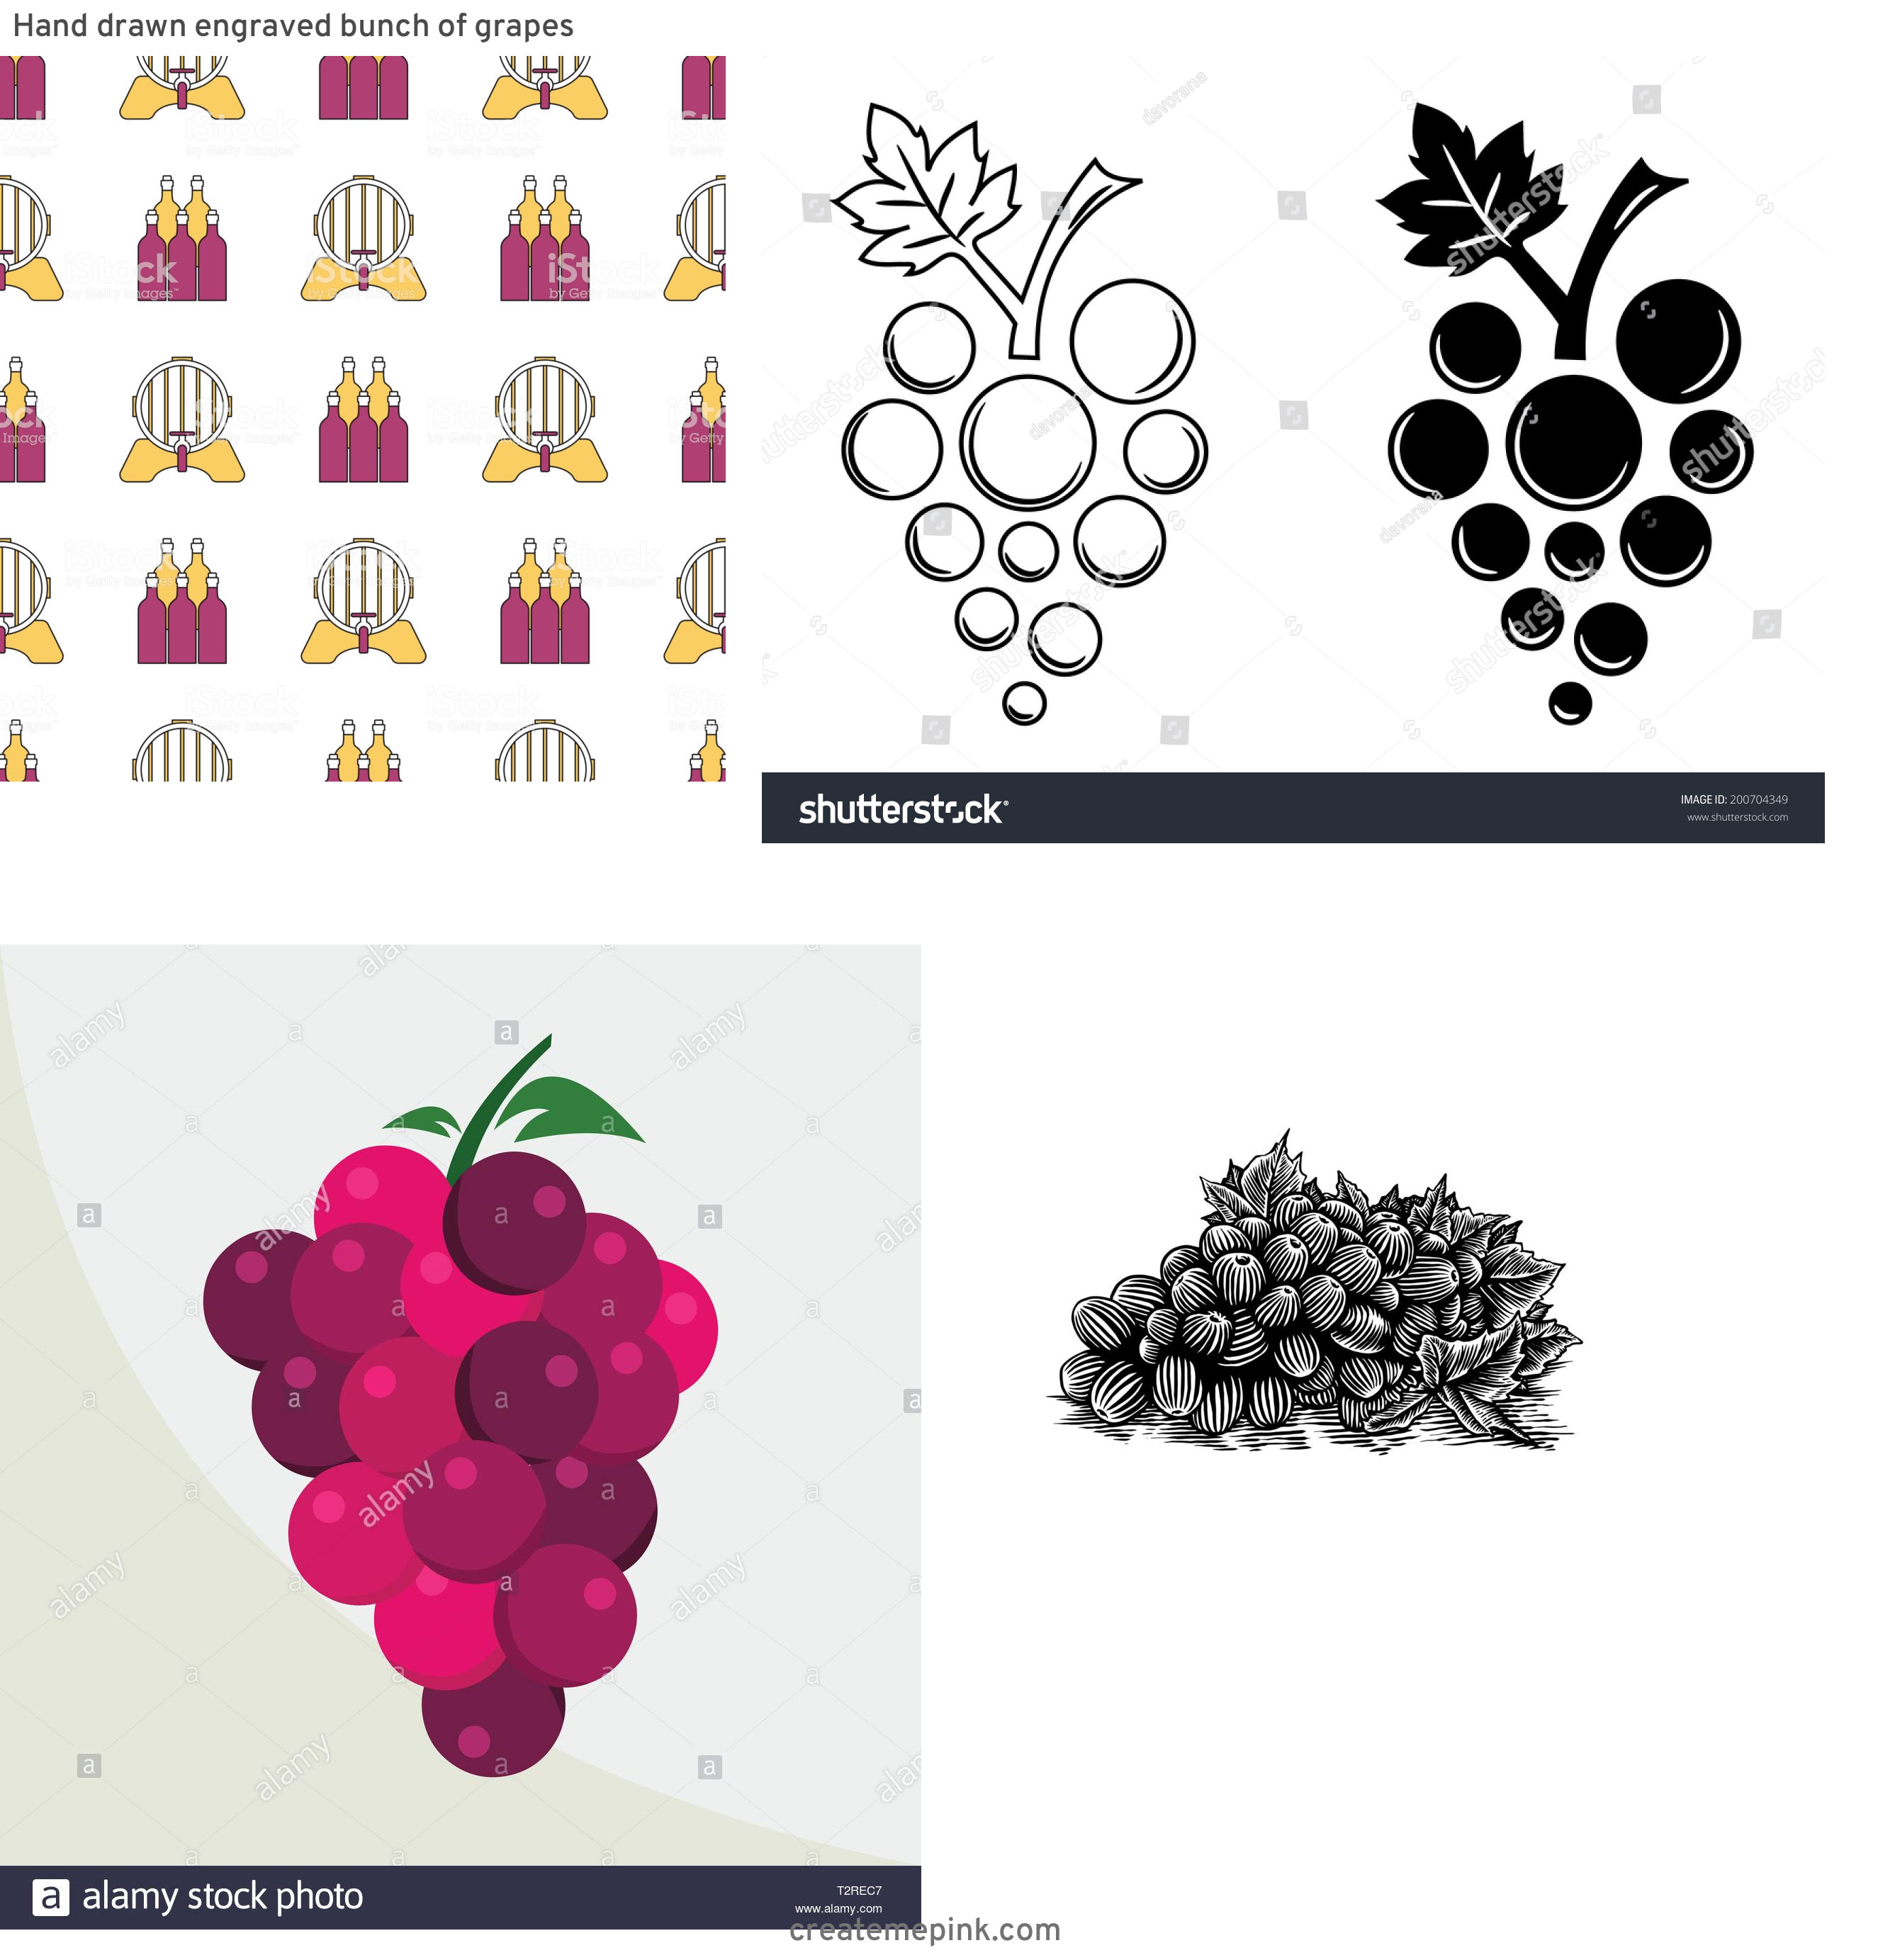 Grapes Vector Art: Hand Drawn Engraved Bunch Of Grapes